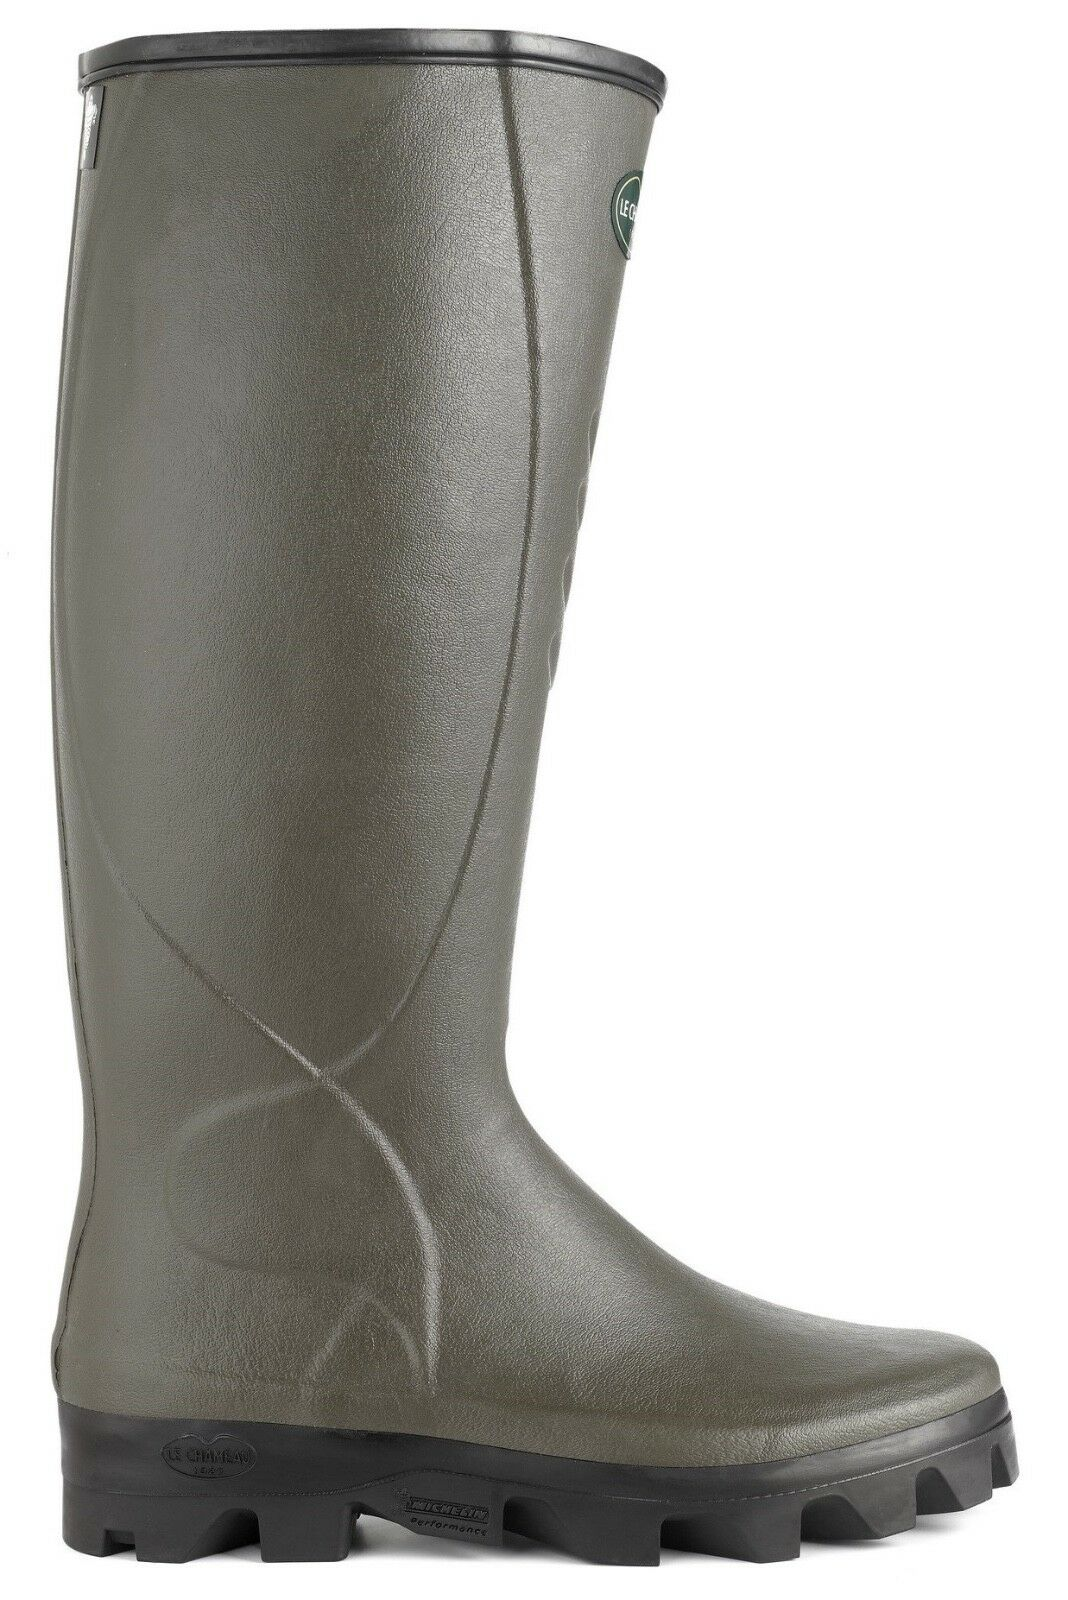 Le Chameau Ceres Neoprene Lined Wellington Boots With Michelin Sole